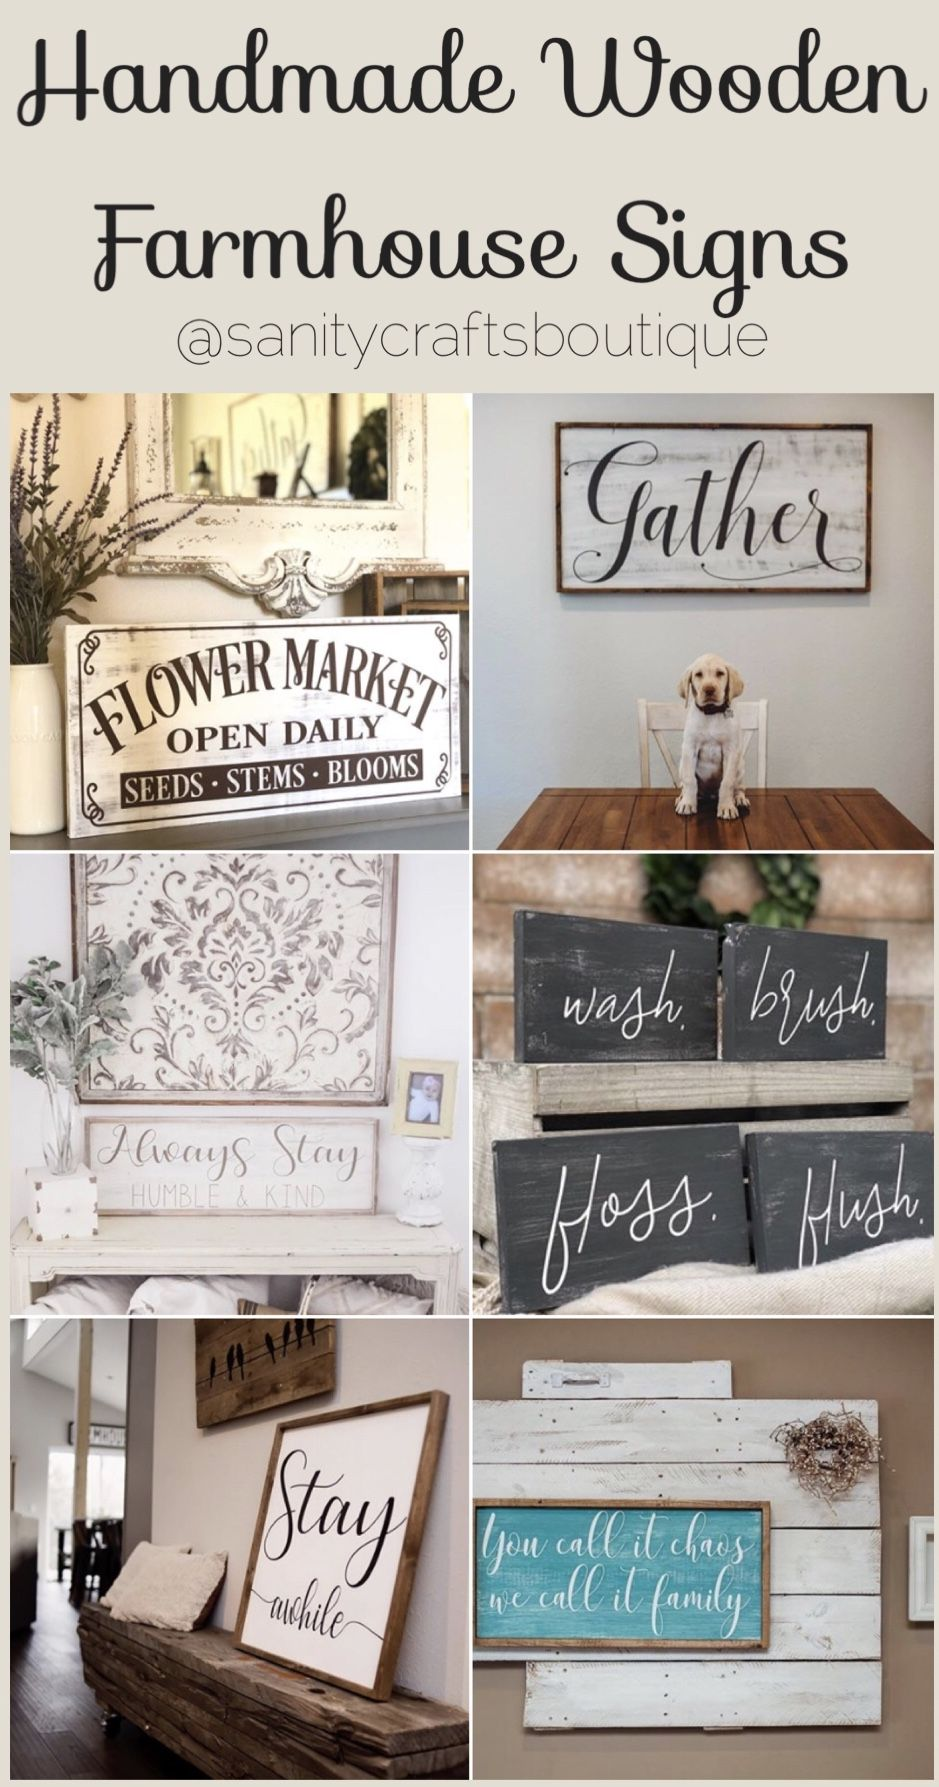 Handmade Farmhouse Wooden Signs Farmhouse Signs Wooden Farmhouse Decor Home Decor Handmade Farmhouse Magnolia S Farmhouse Decor Decor Farmhouse Signs